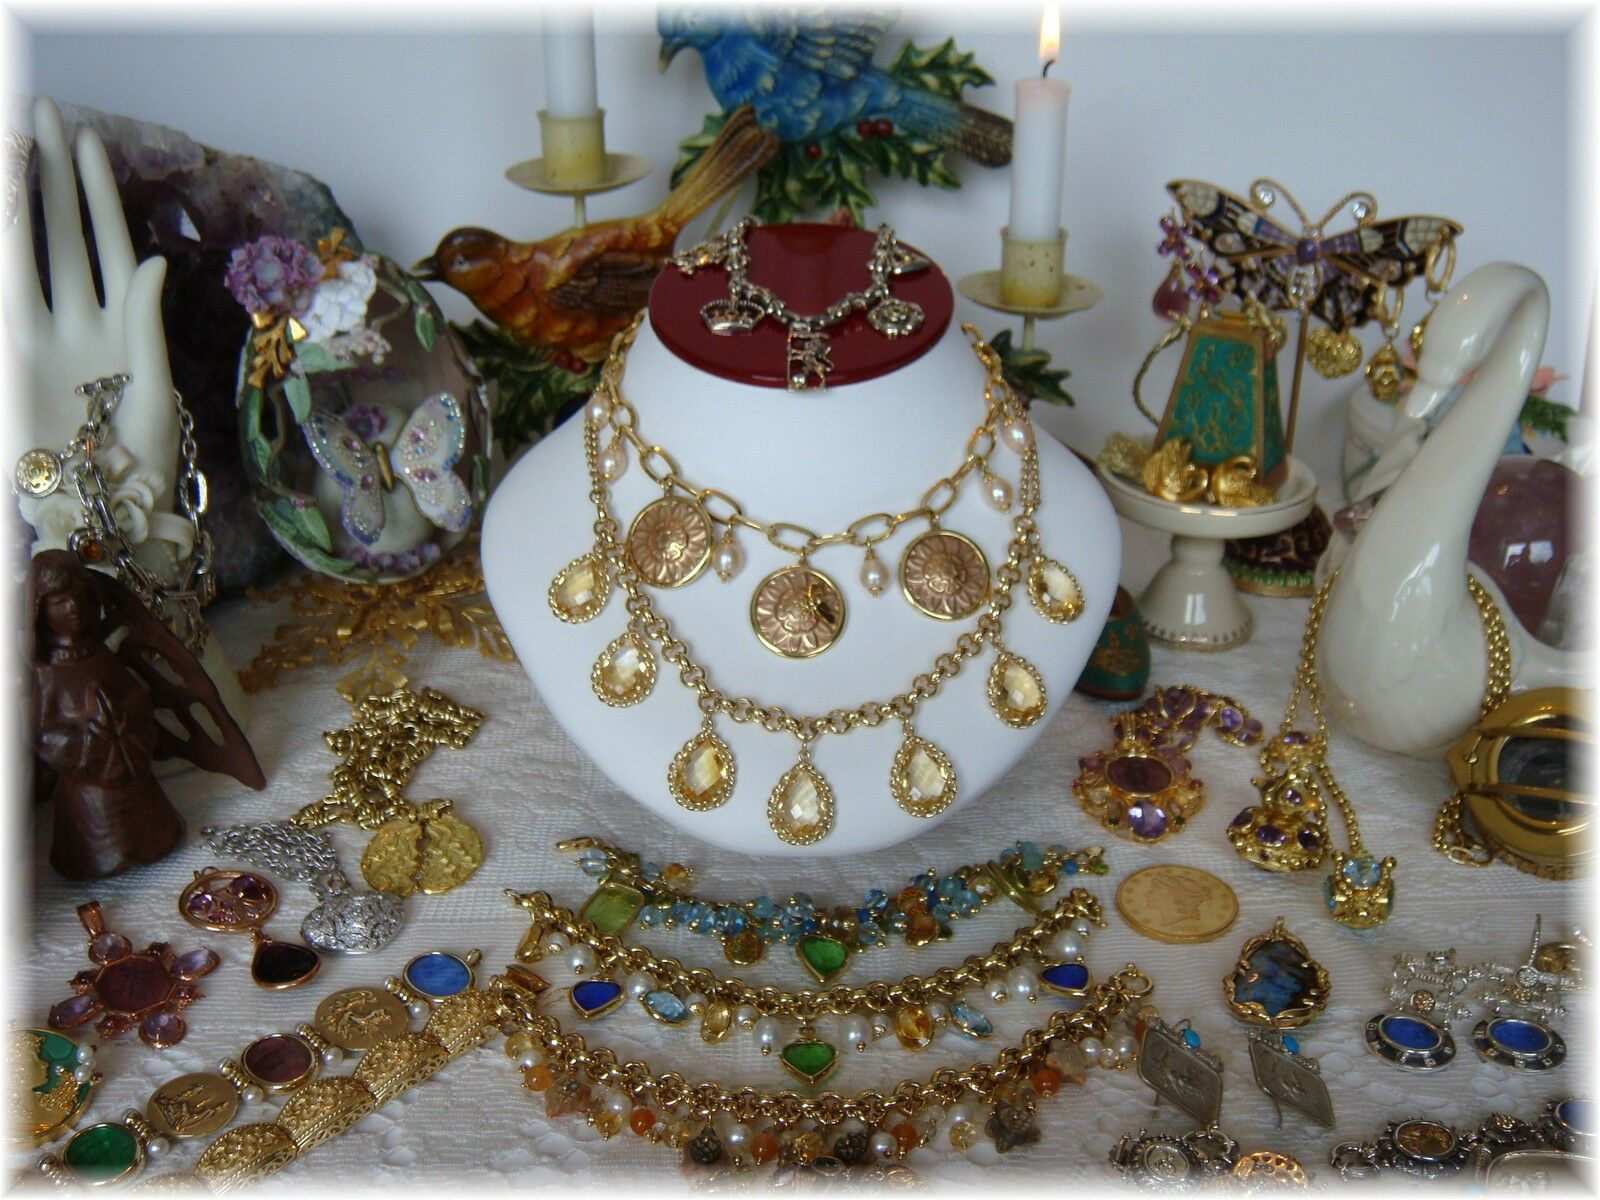 Olde World Treasures Jewelry